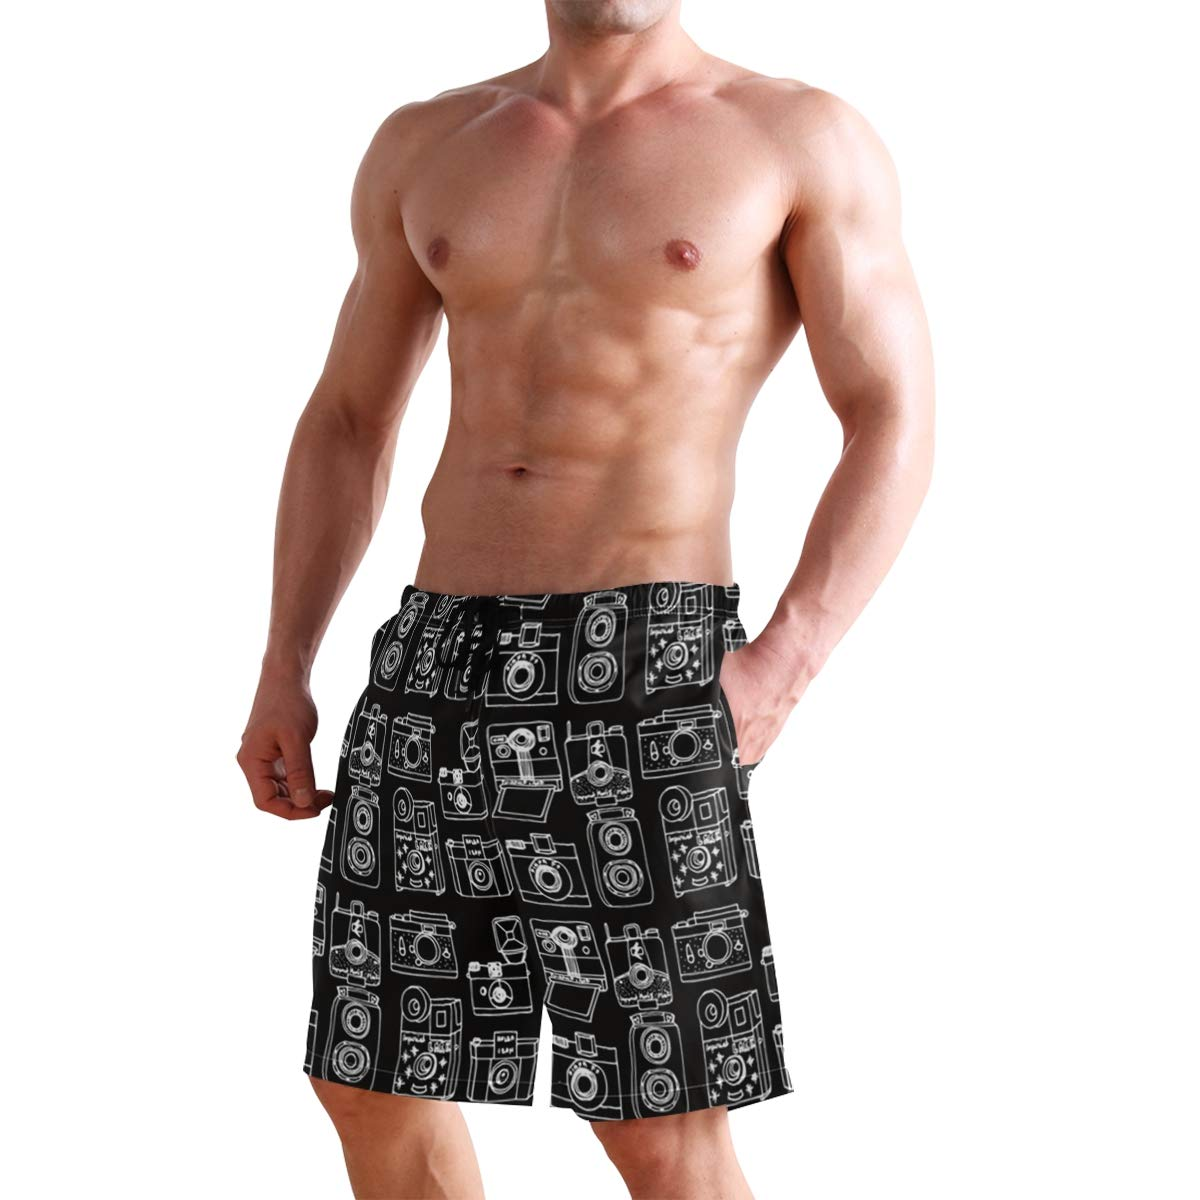 Mens Vintage Cameras Black Shorts Swimwear Running Shorts Beach Shorts for Men